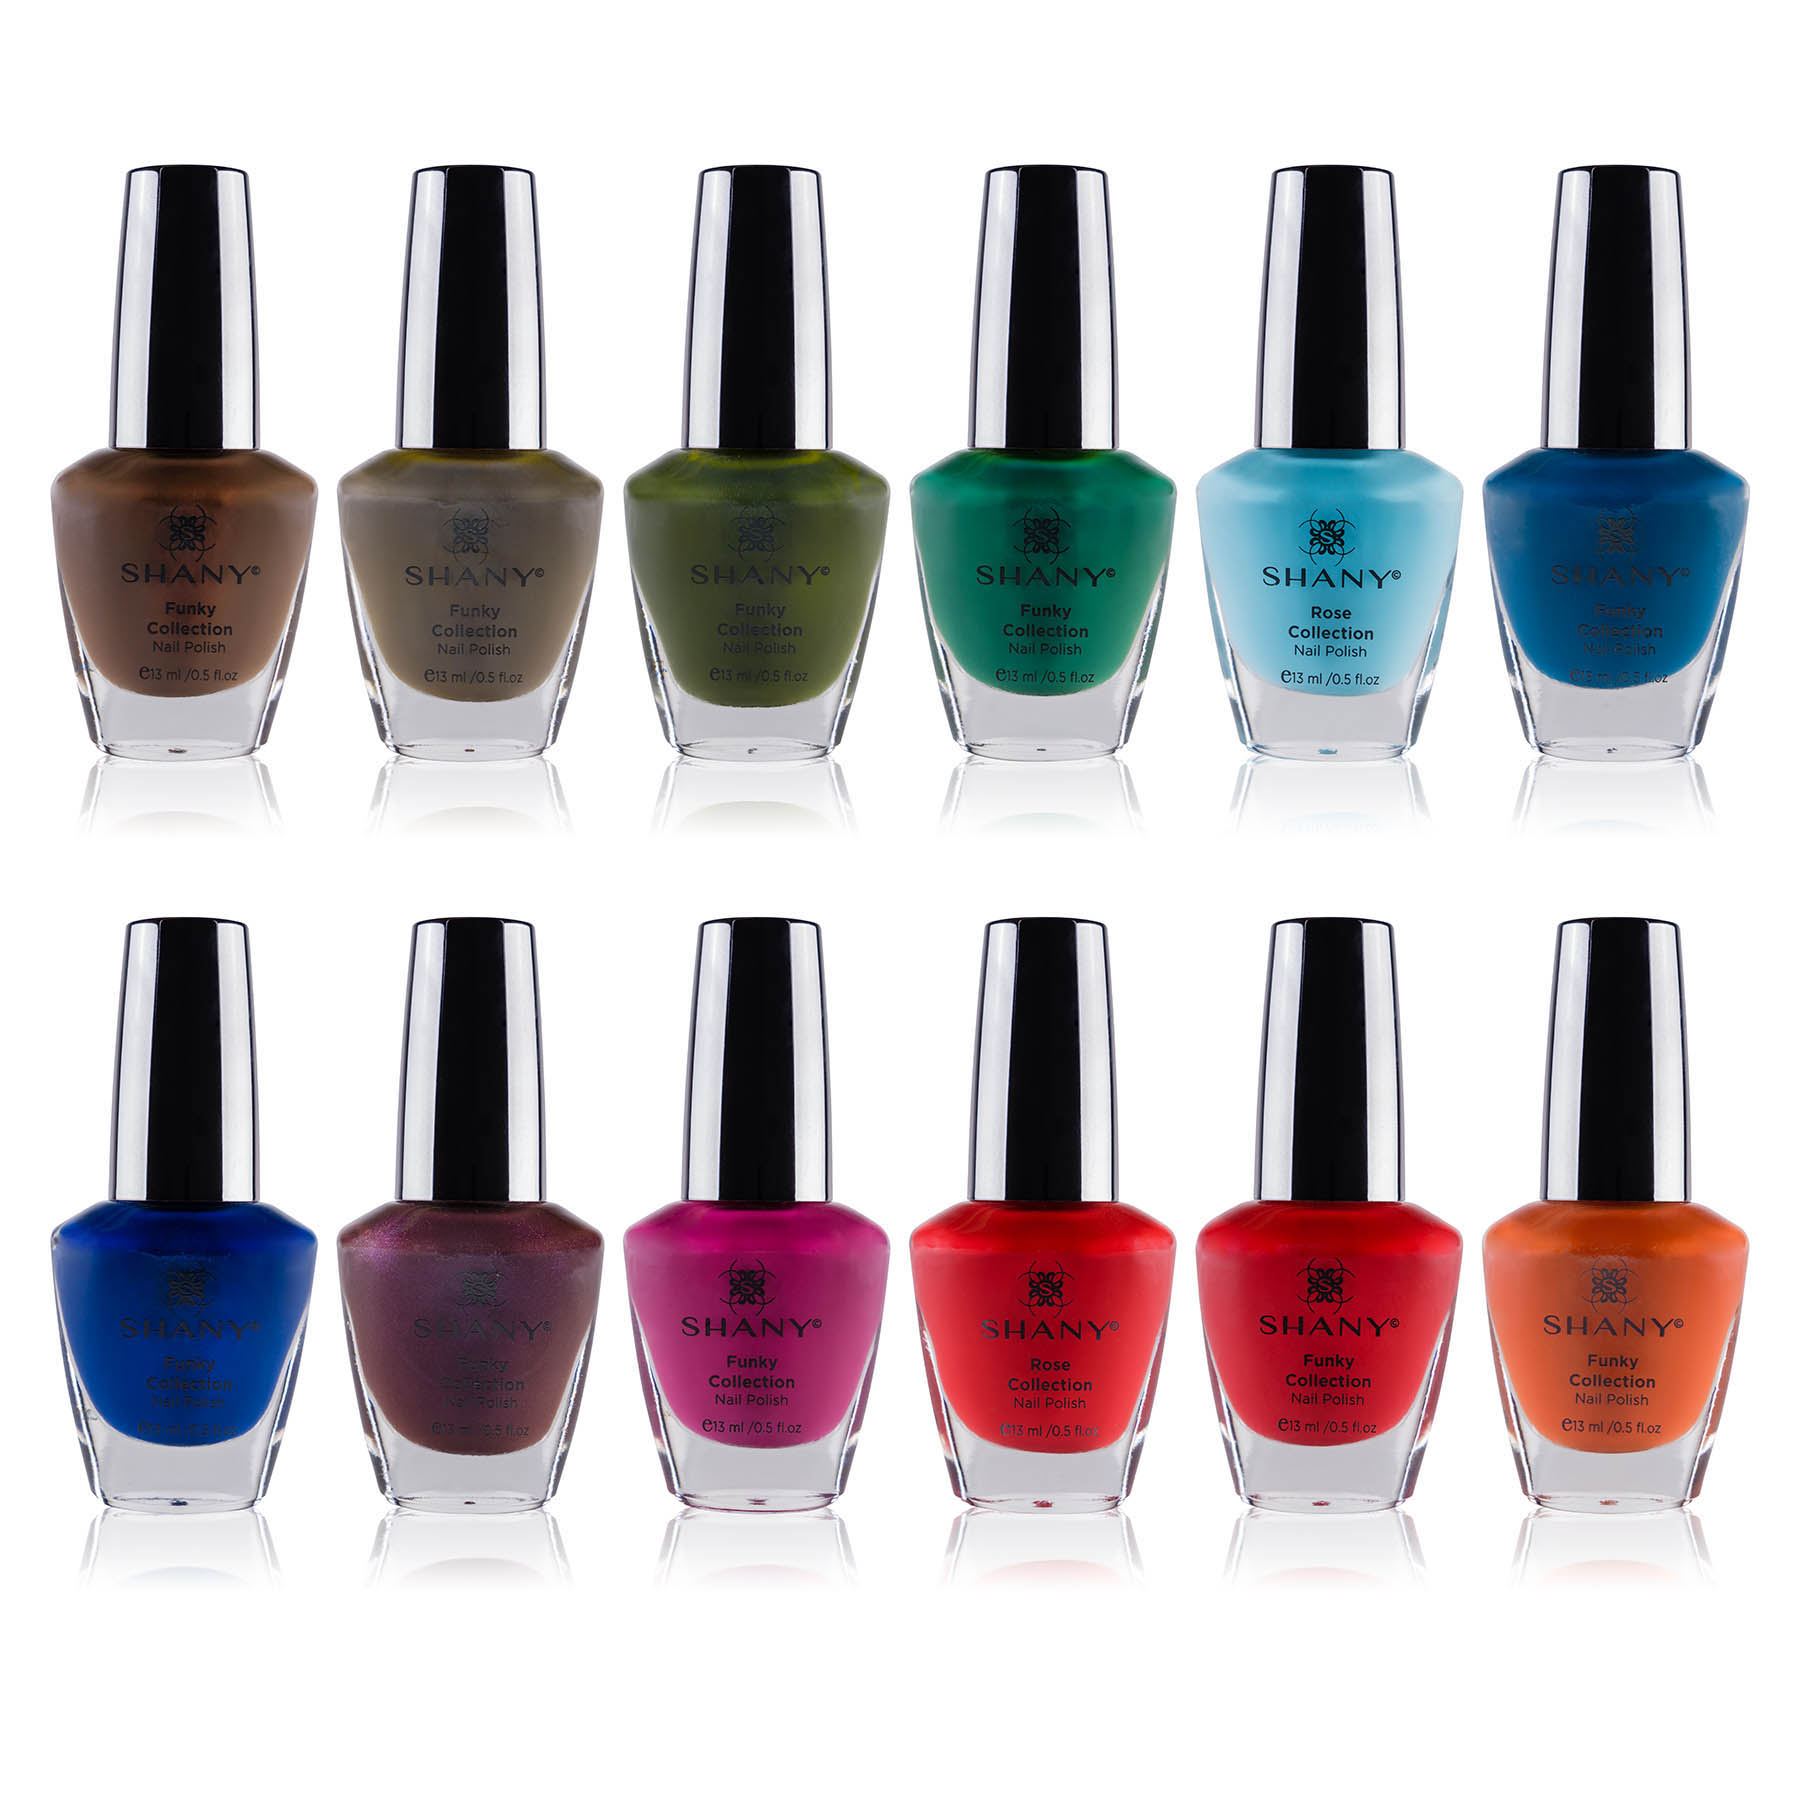 The SHANY Funky Collection Nail Polish Set - 12 Bold and Qui